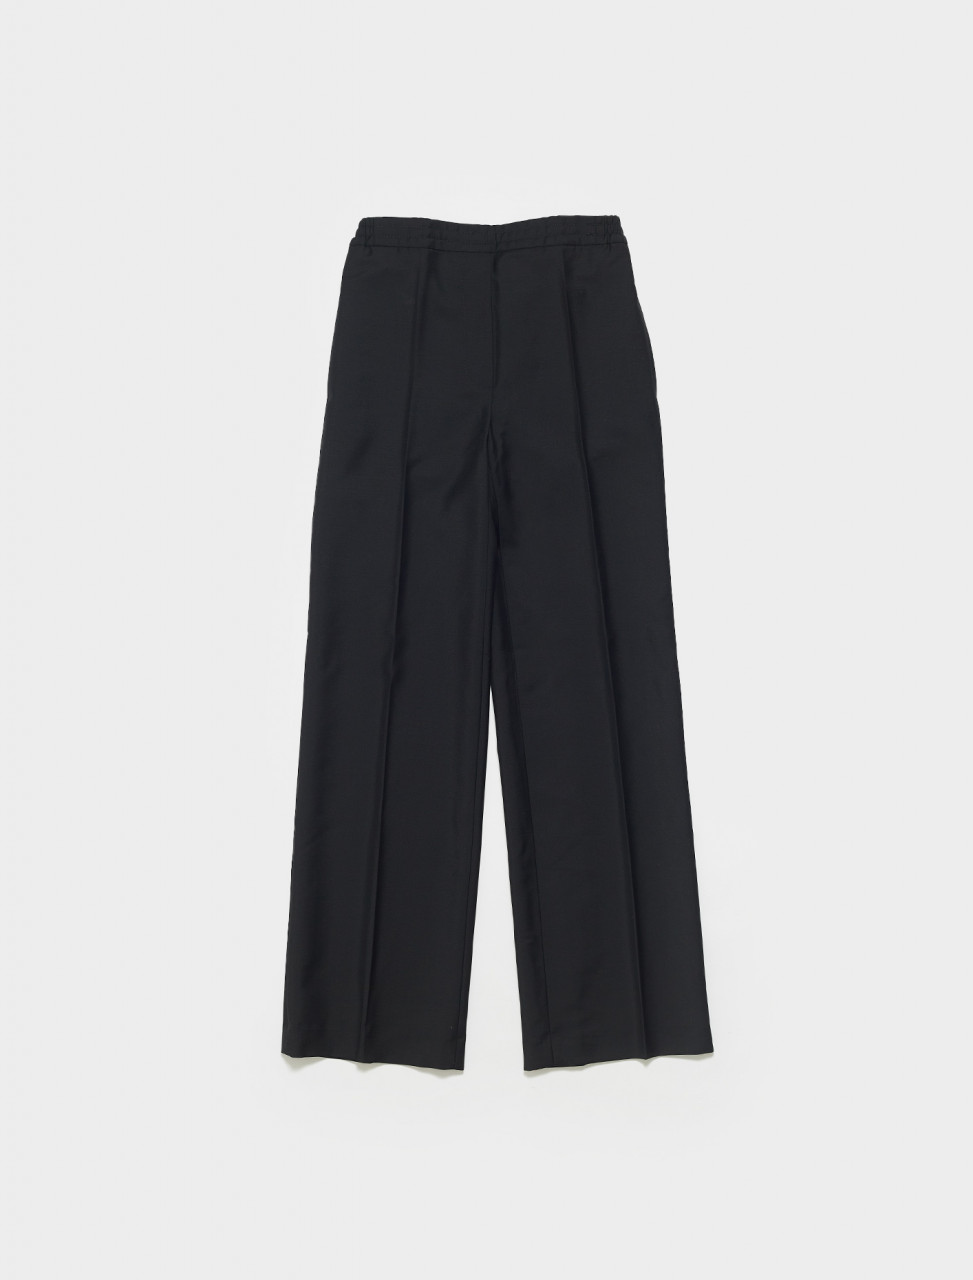 AK0318-900 ACNE STUDIOS PAMINNE WOOL TROUSERS IN BLACK